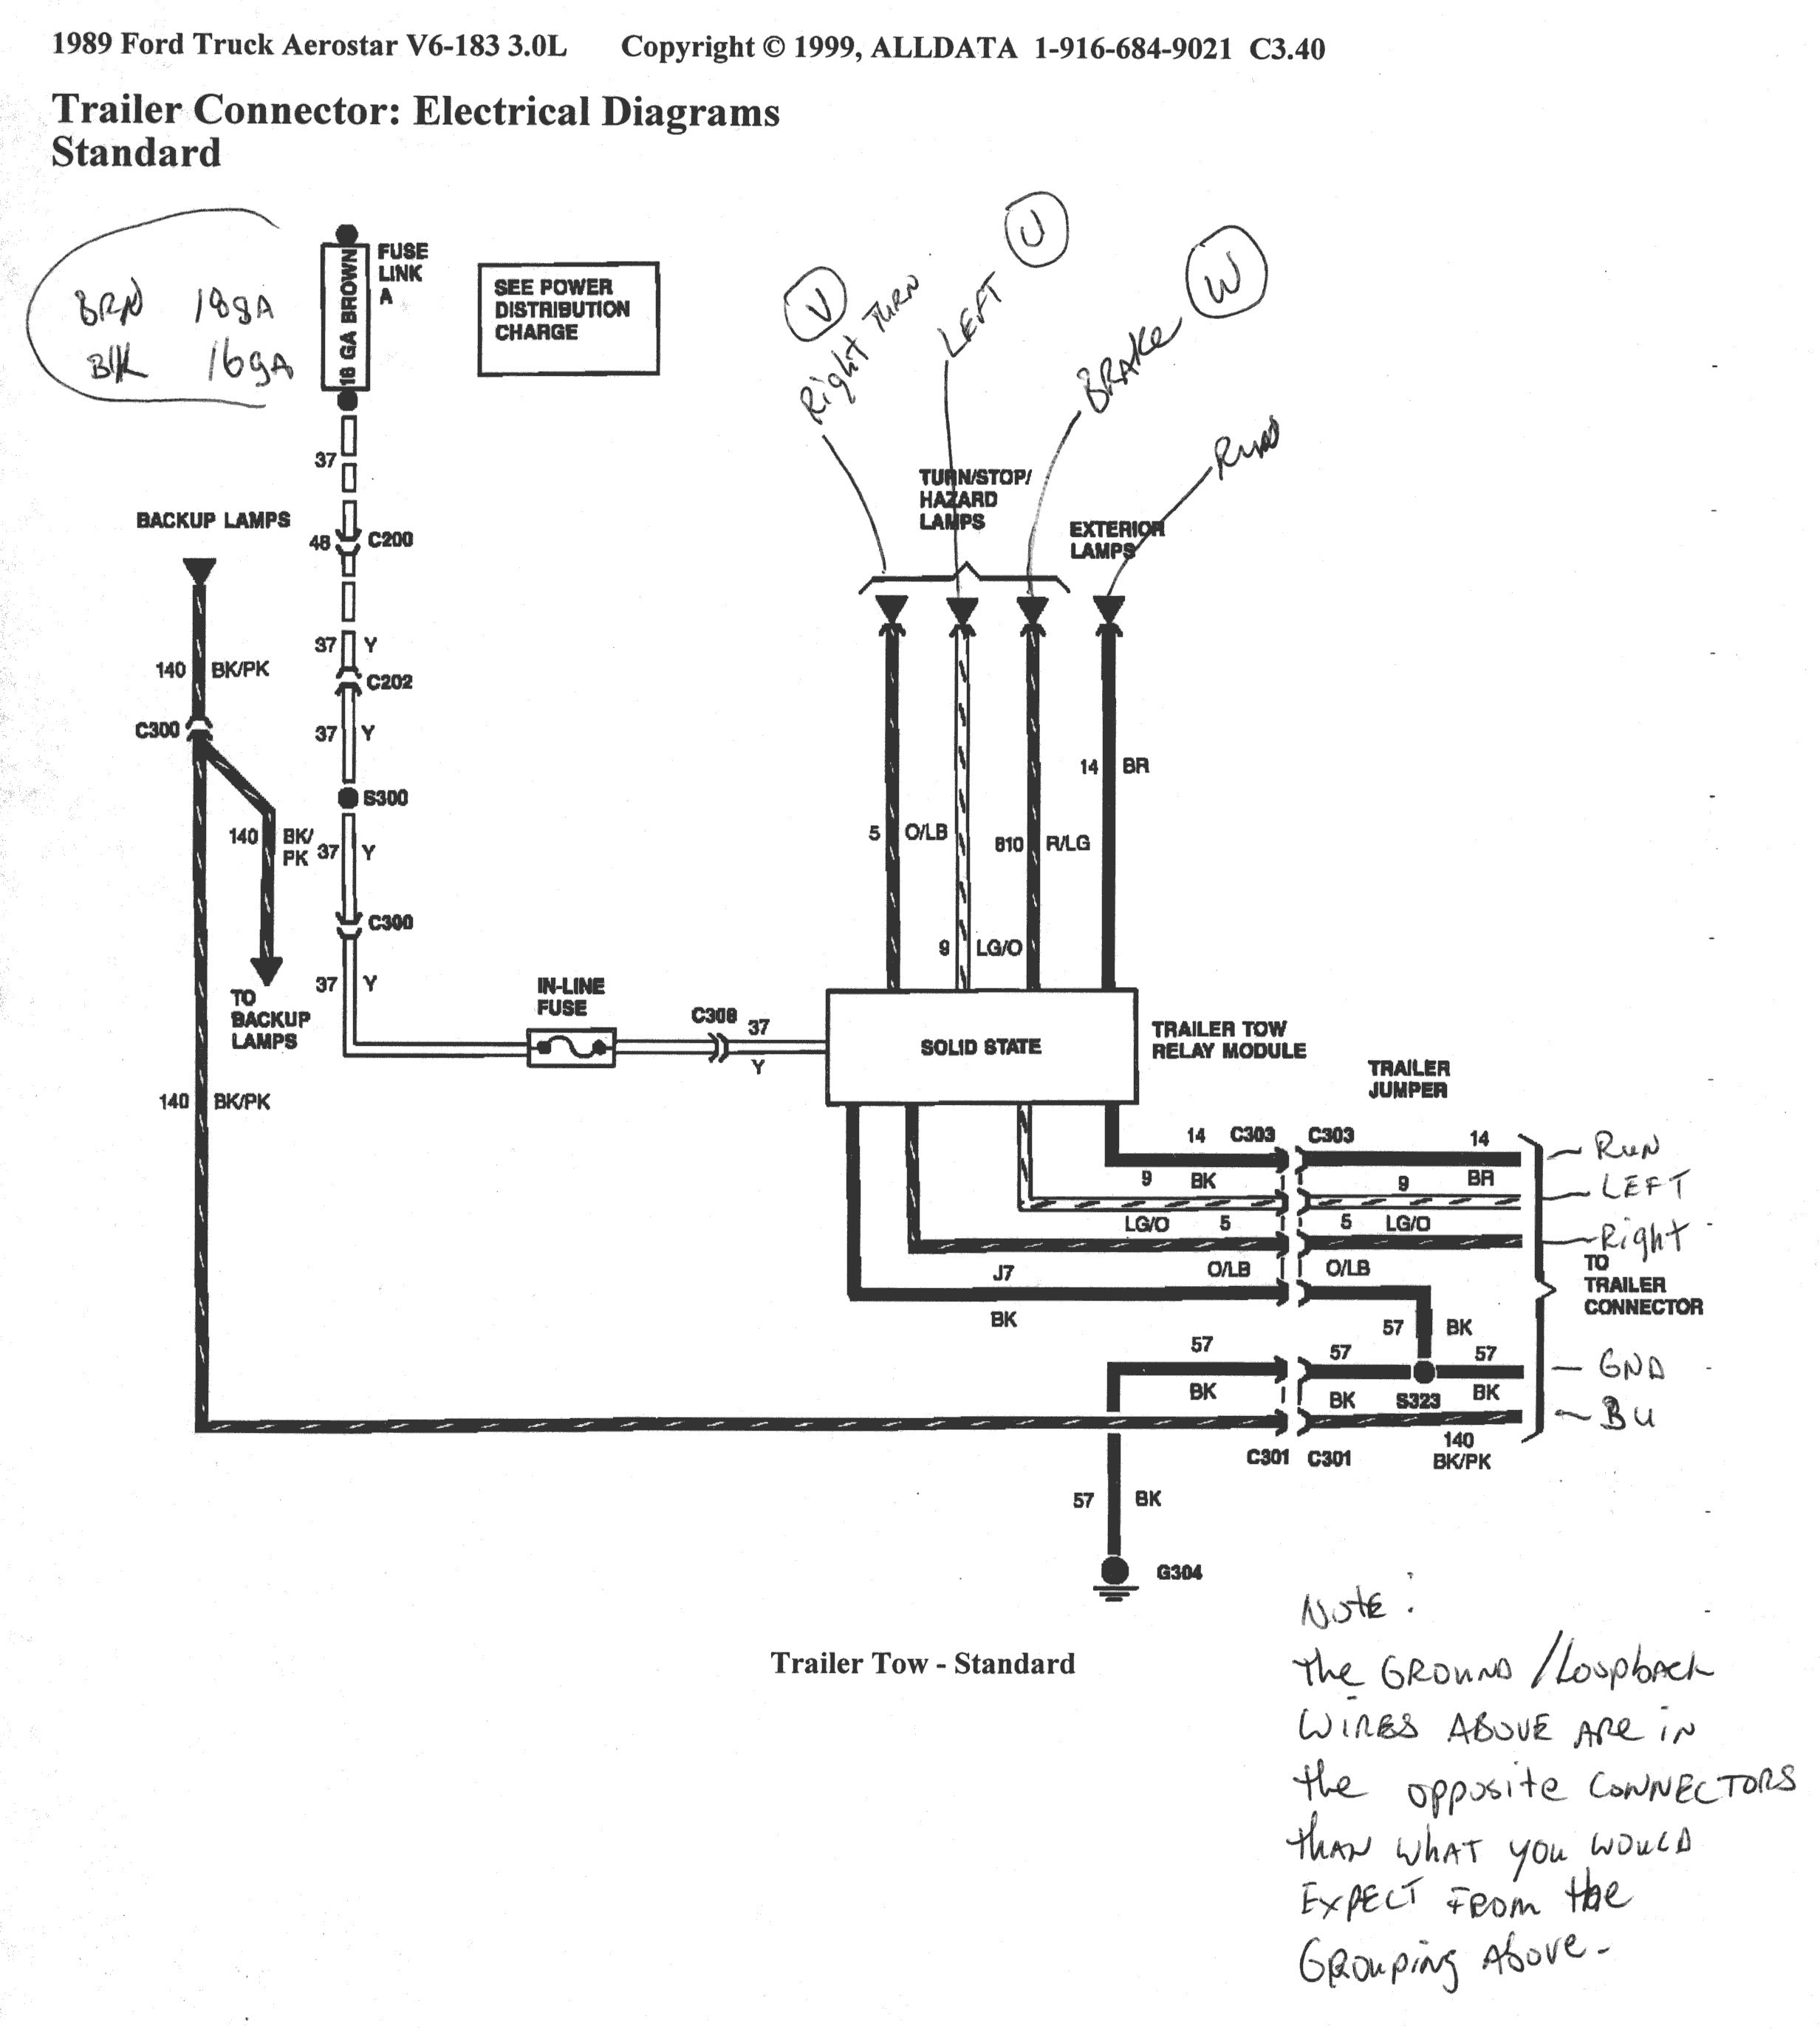 2001 Ford F550 Trailer Wiring Diagram